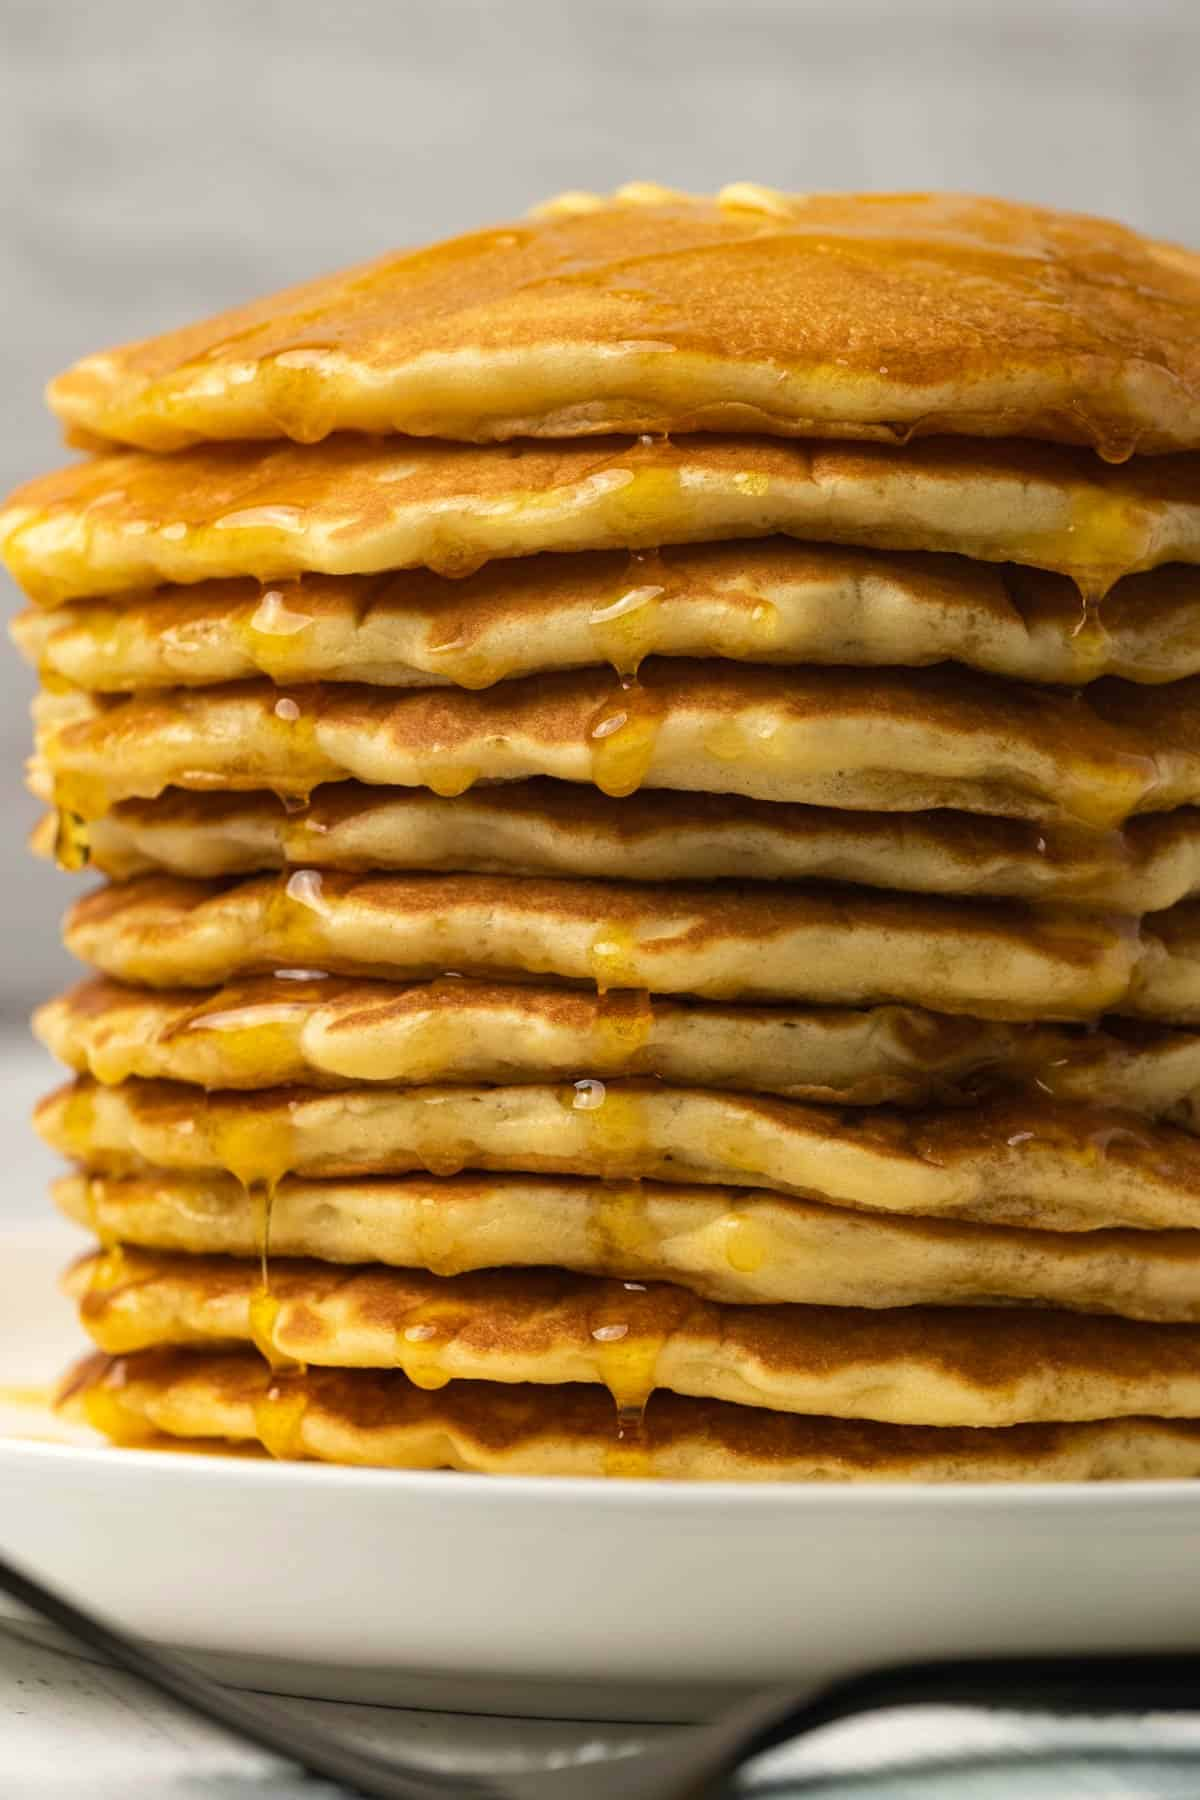 Stack of pancakes with butter and syrup on a white plate.